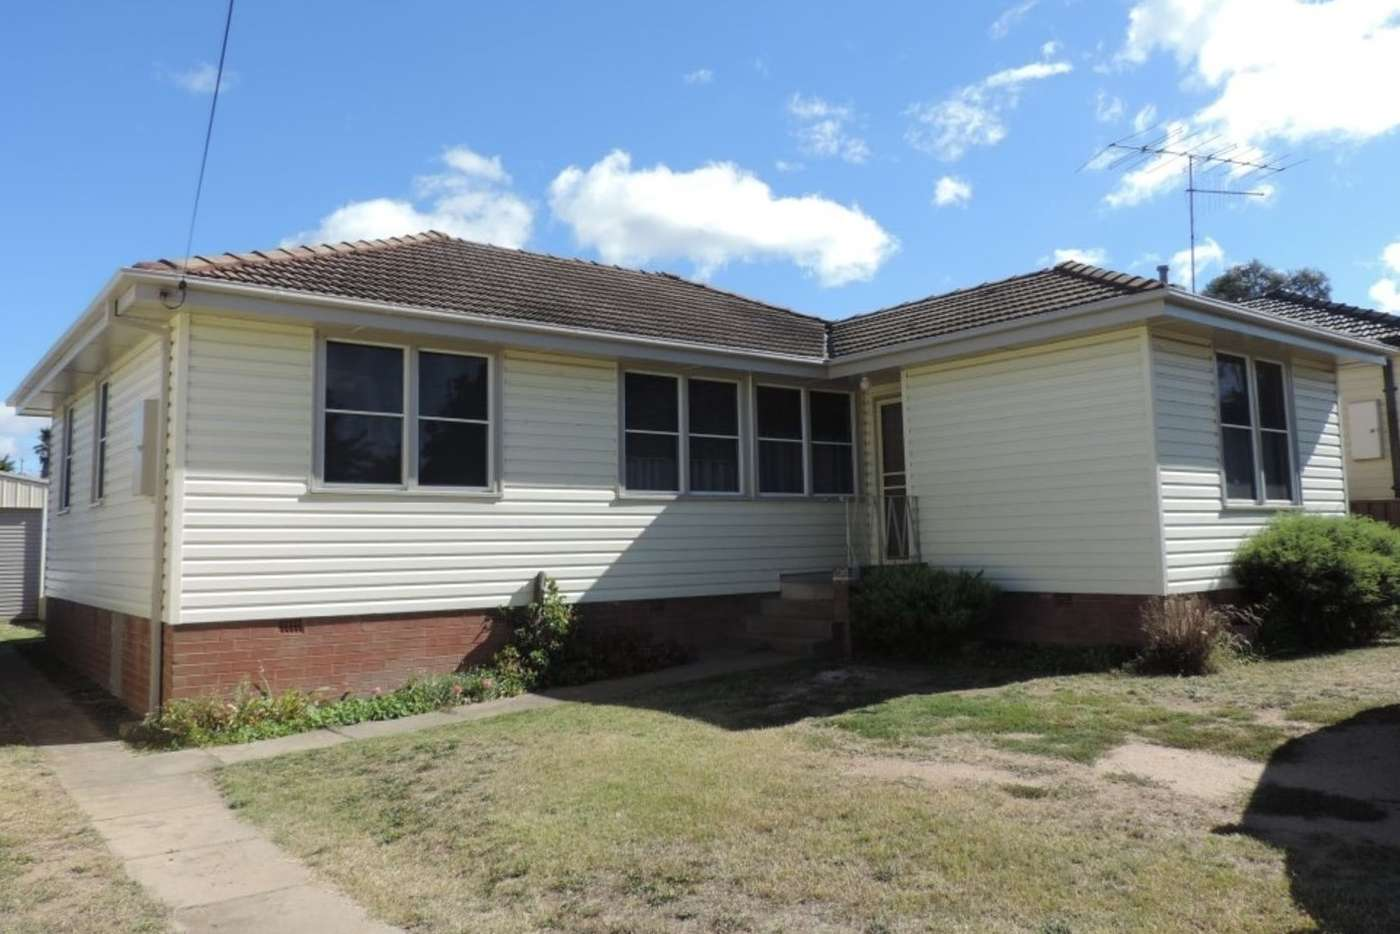 Main view of Homely house listing, 46 Hume Street, Goulburn NSW 2580